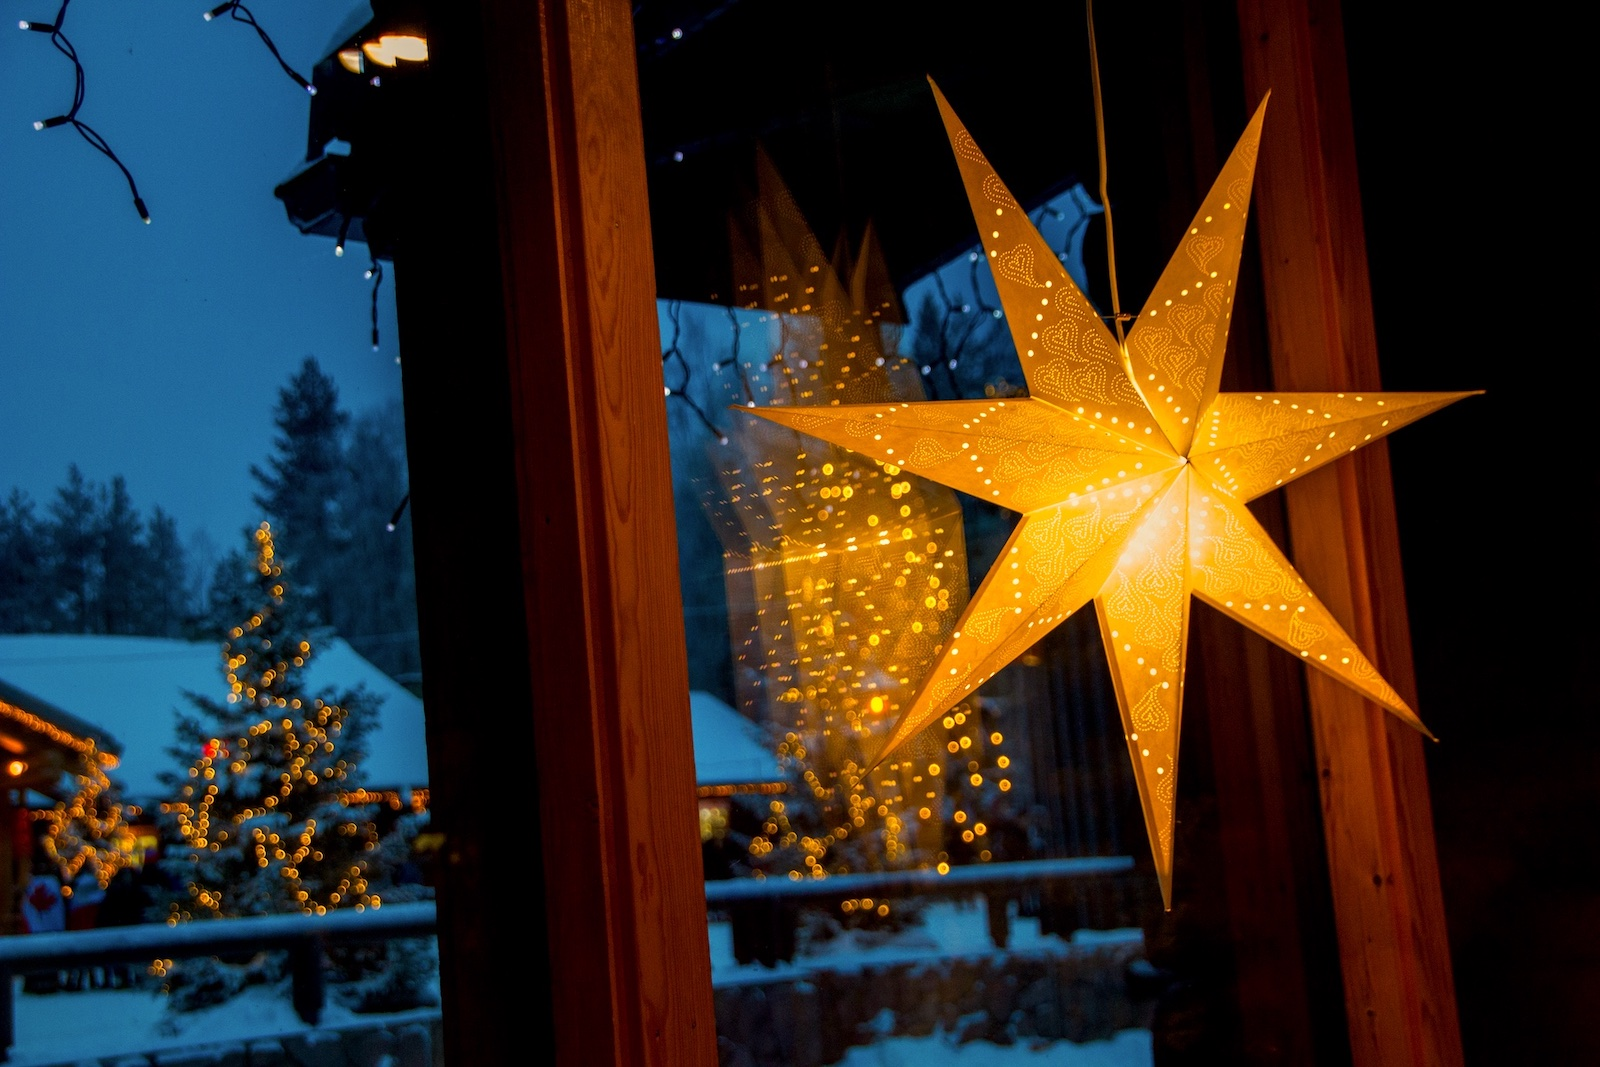 Christmas star hanging by window of a house in evening.